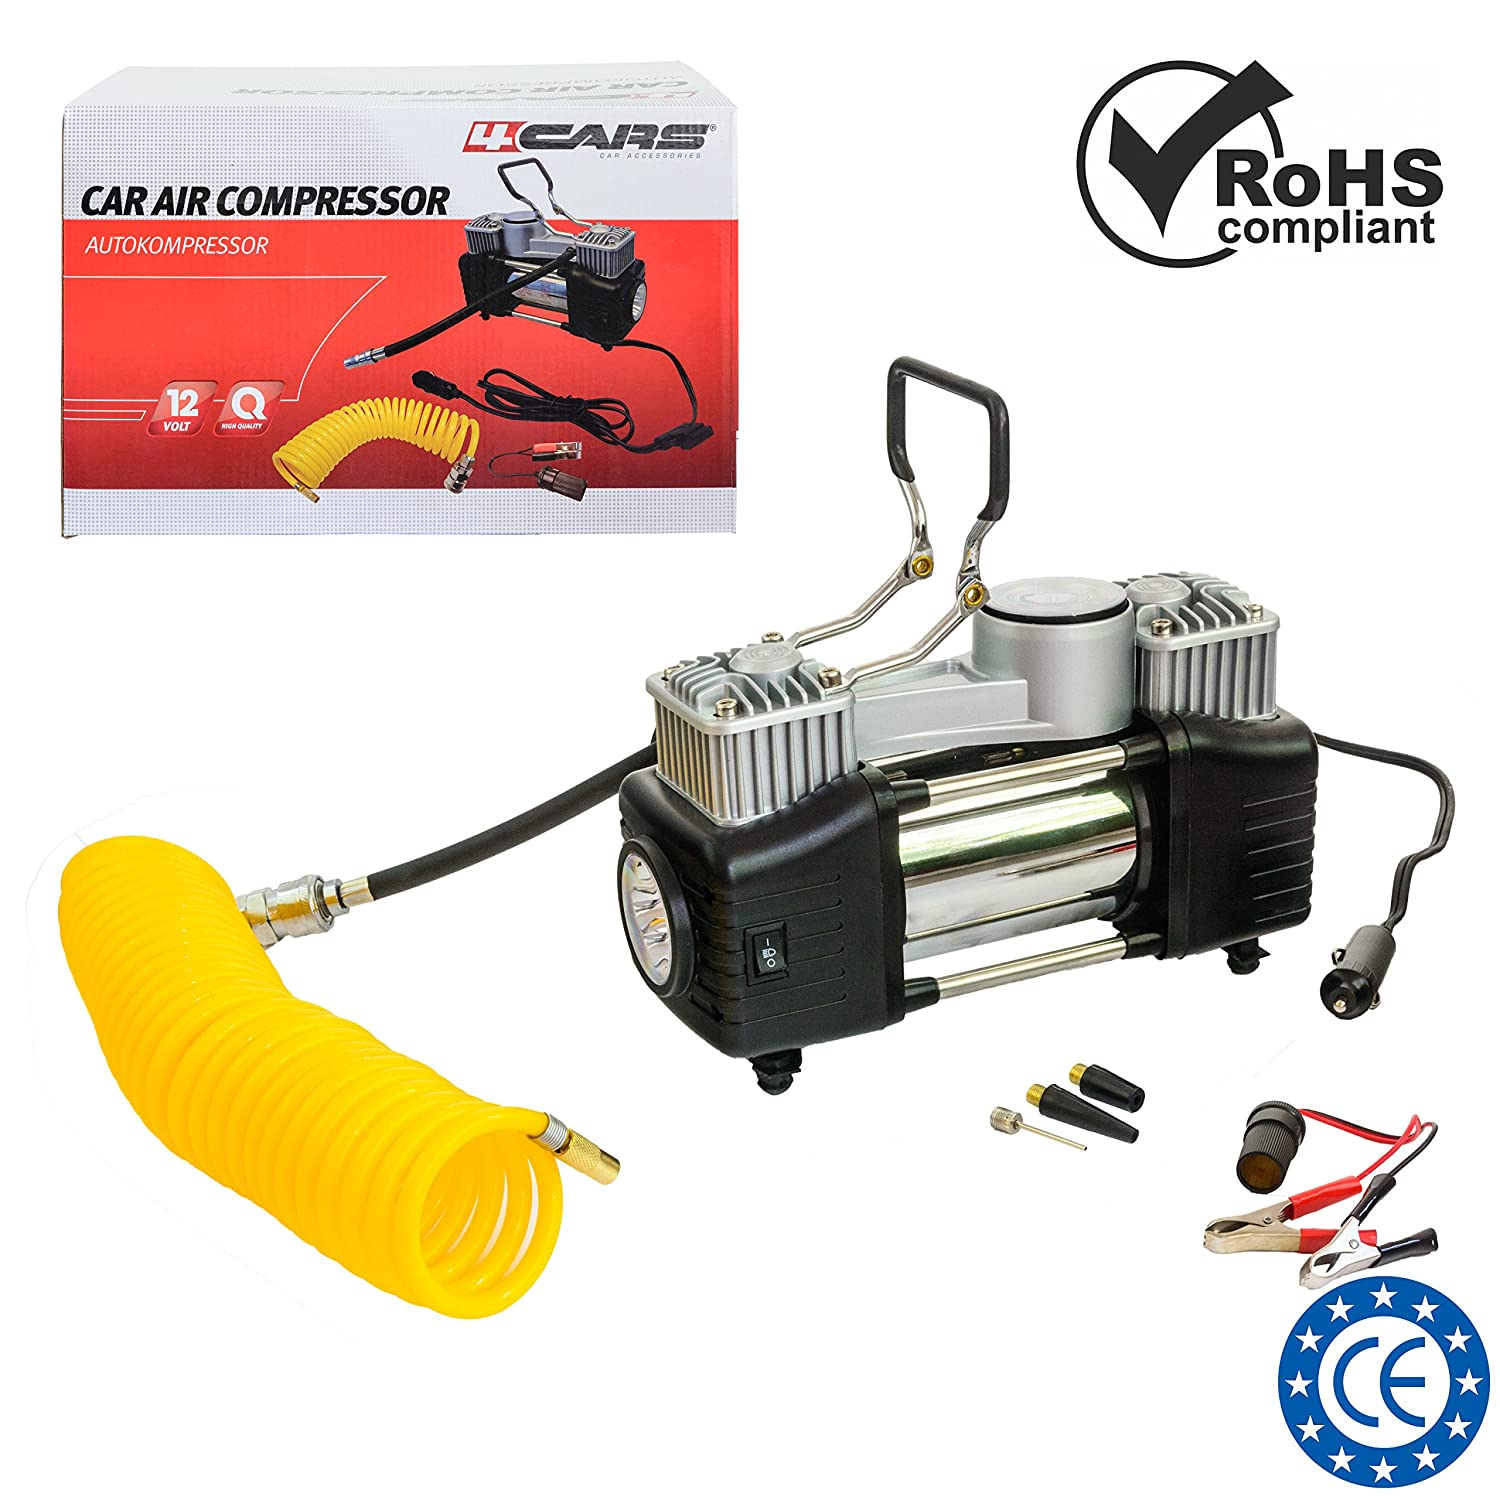 Portable car tyre 2-cylinder air compressor 12 V with coiled air tube extention; DC 12 Volt, max 23 A; max. pressure 150 PSI, flow rate: 85 l/min. Including zipper carry bag. 4CARS